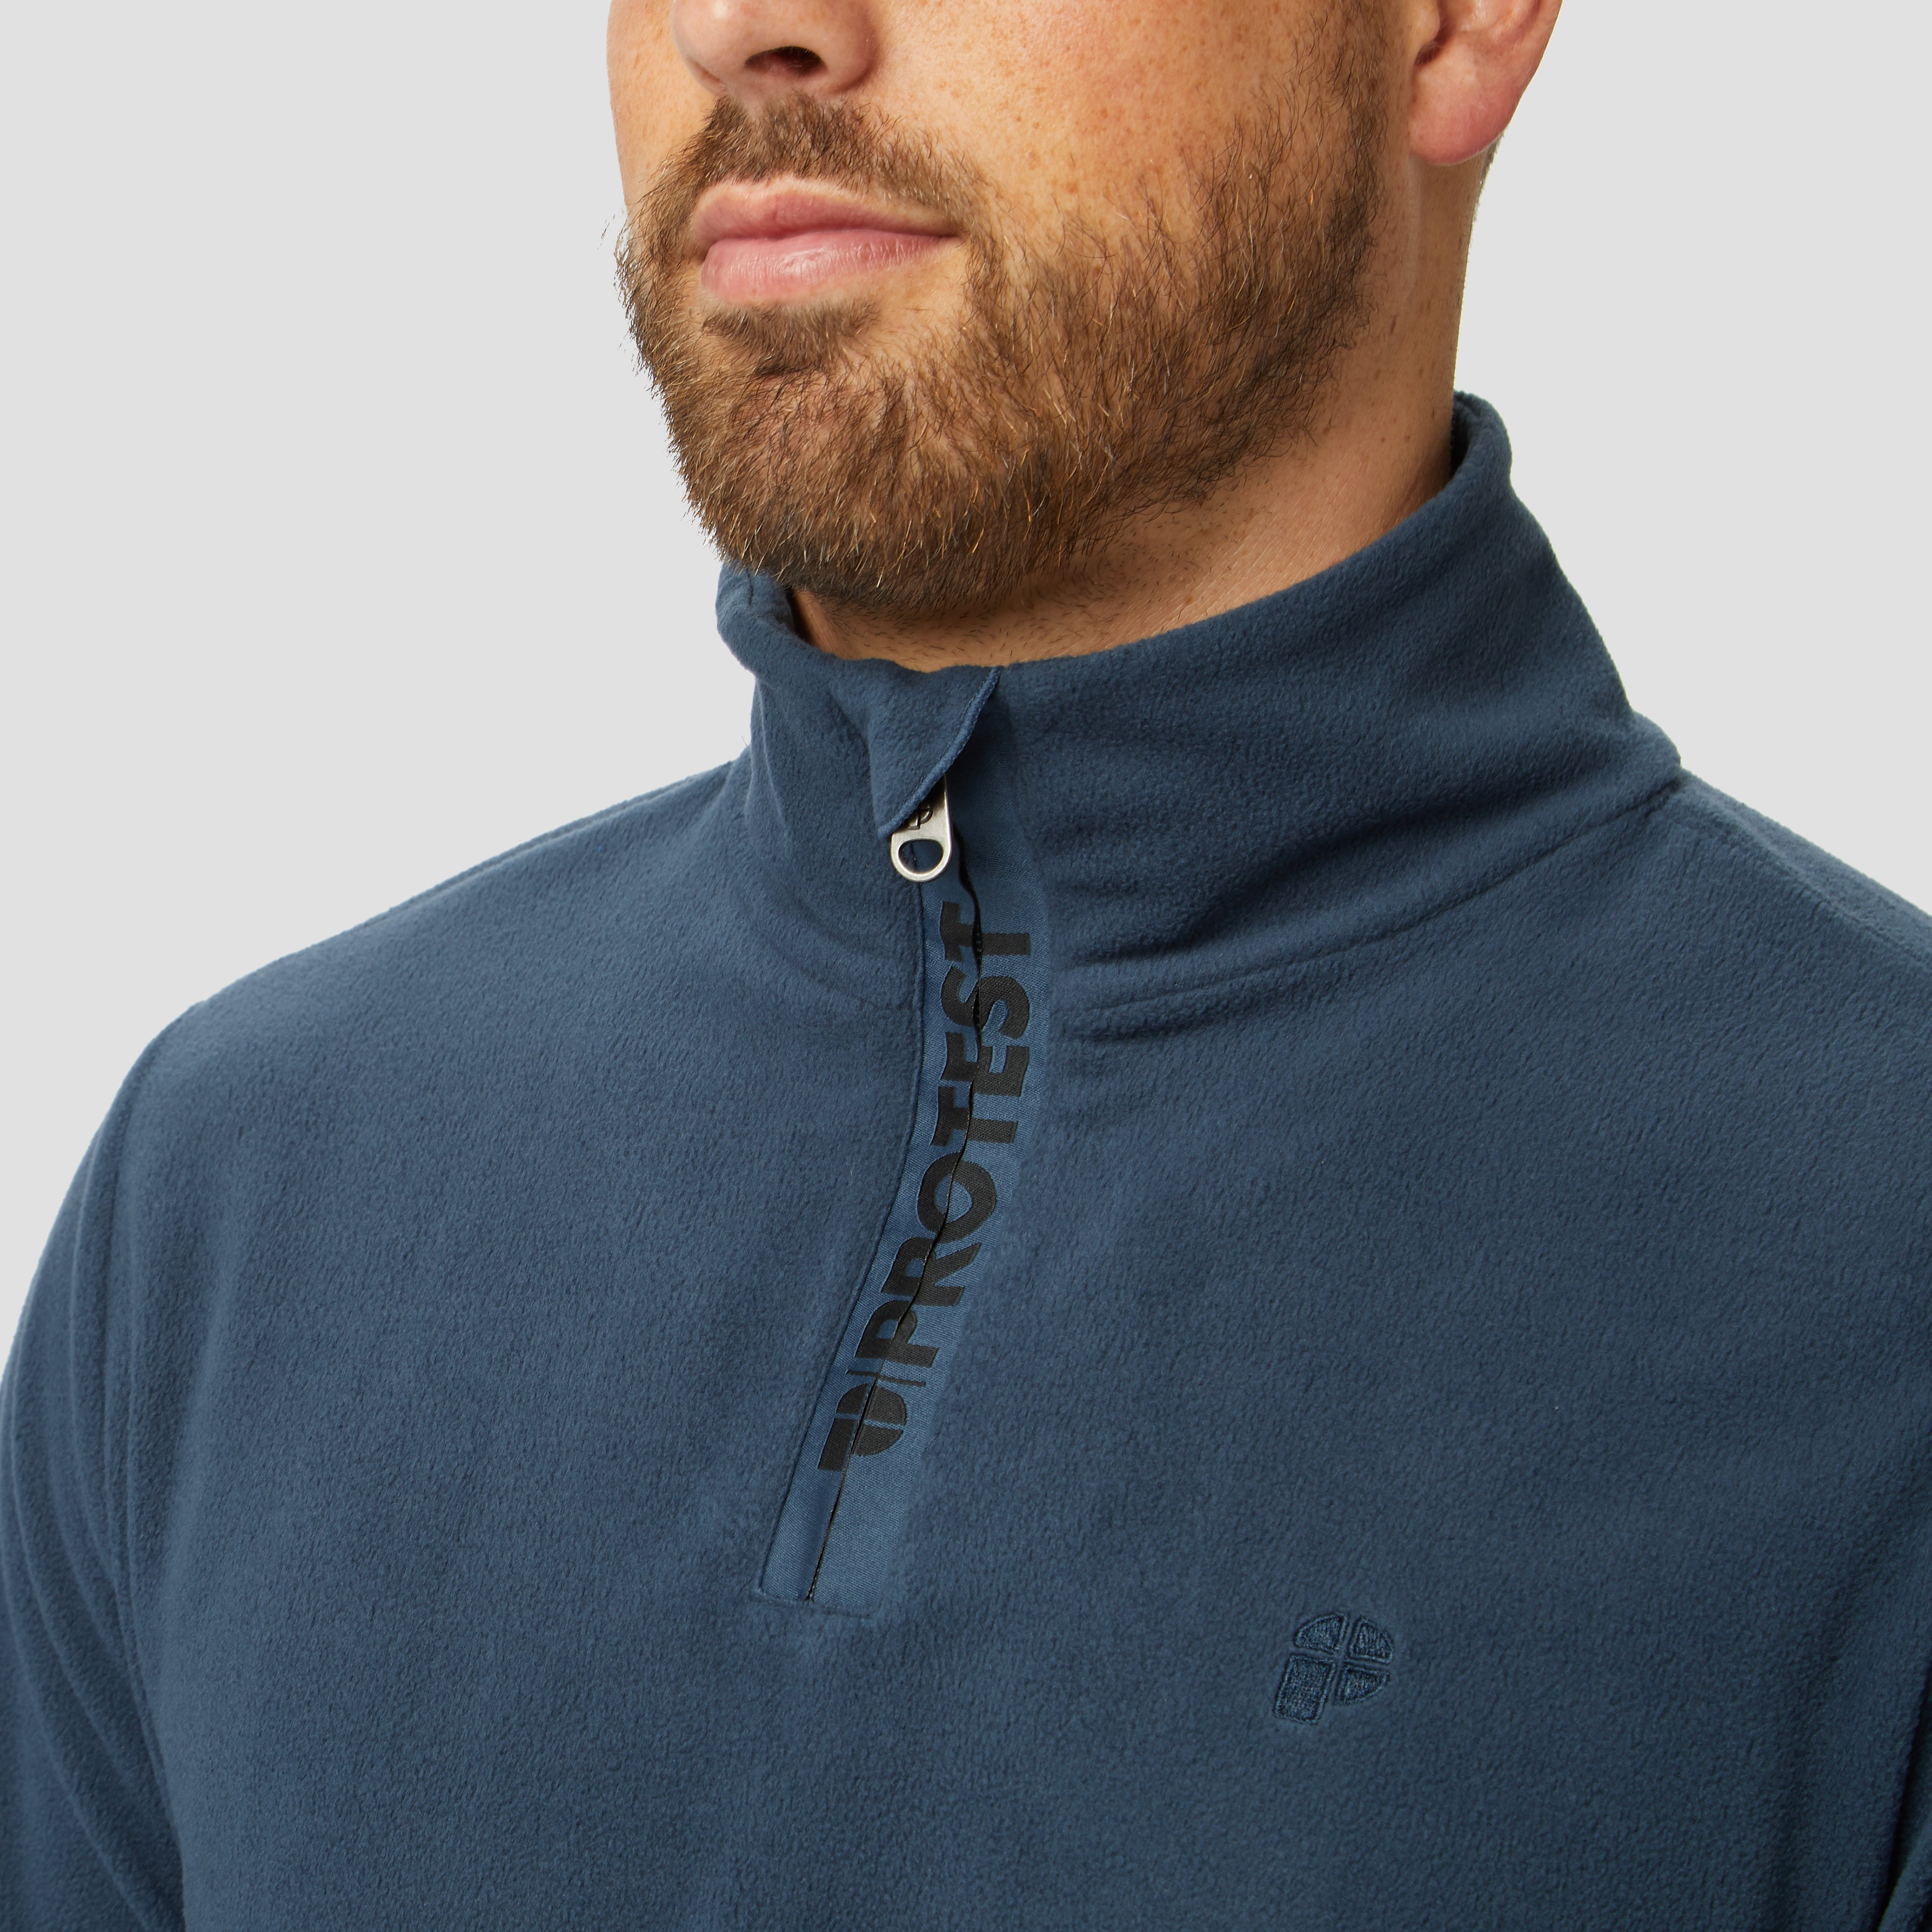 PROTEST PERFECTY PULLY KORTE RITS BLAUW HEREN